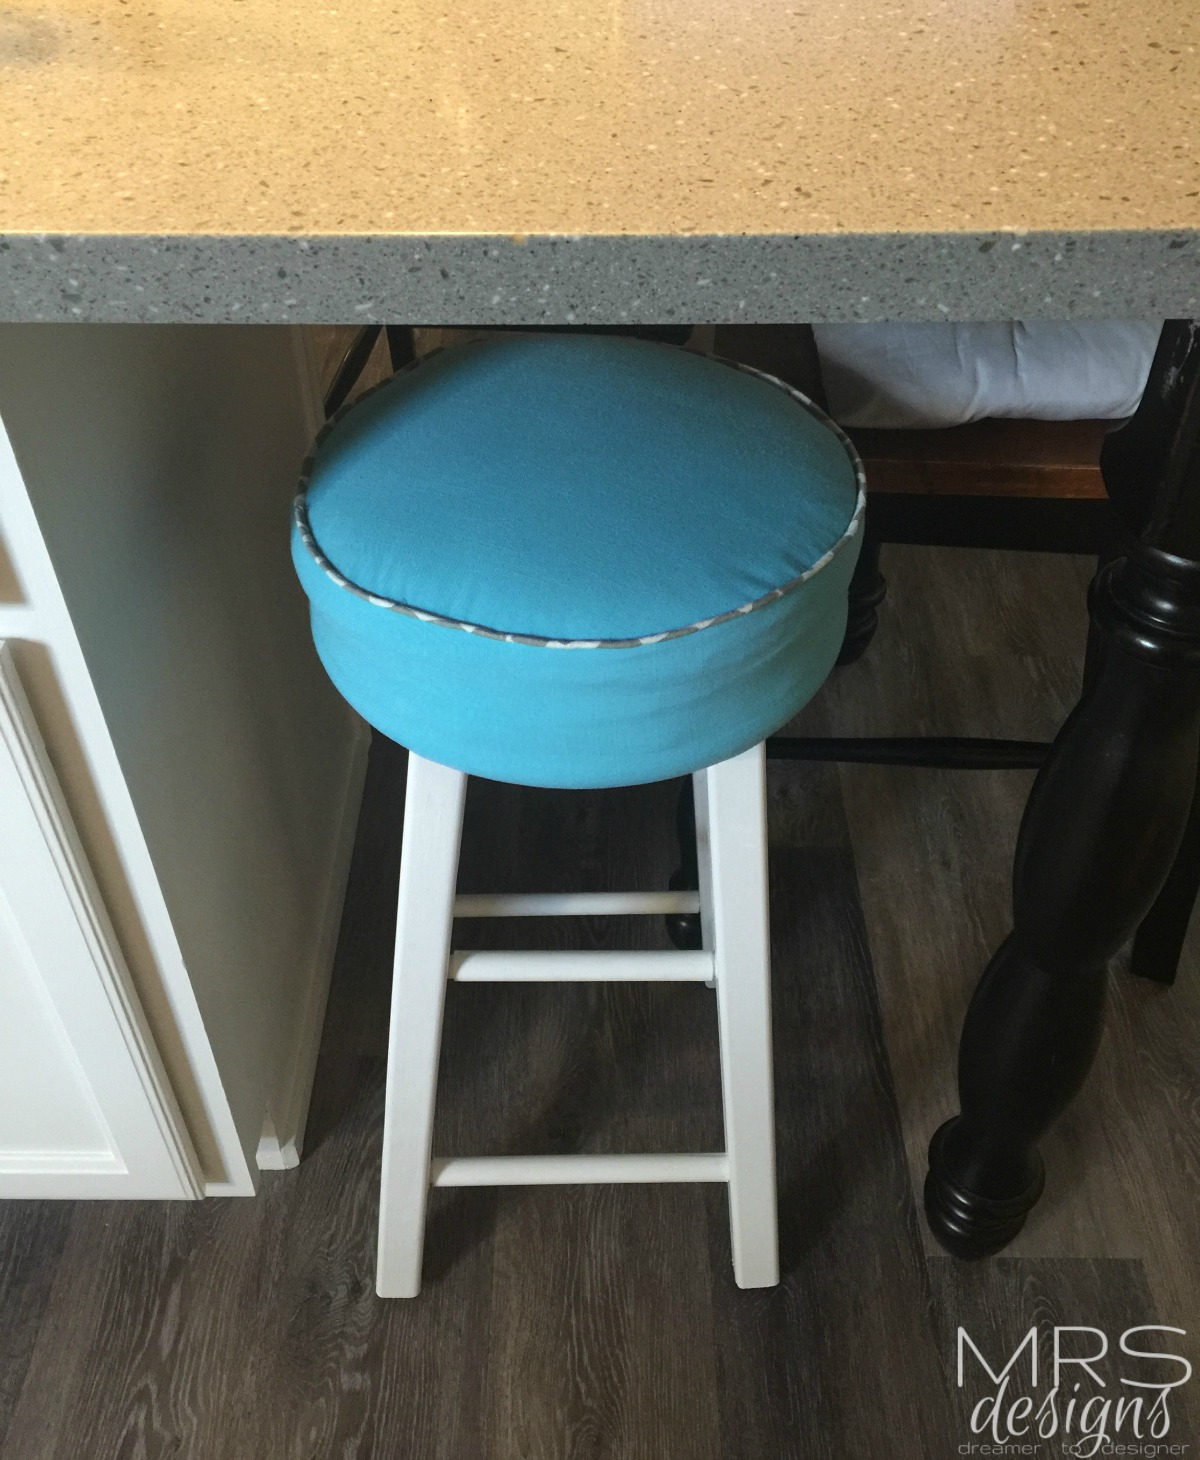 mrs-designs-stool-cushion-under-counter.jpg